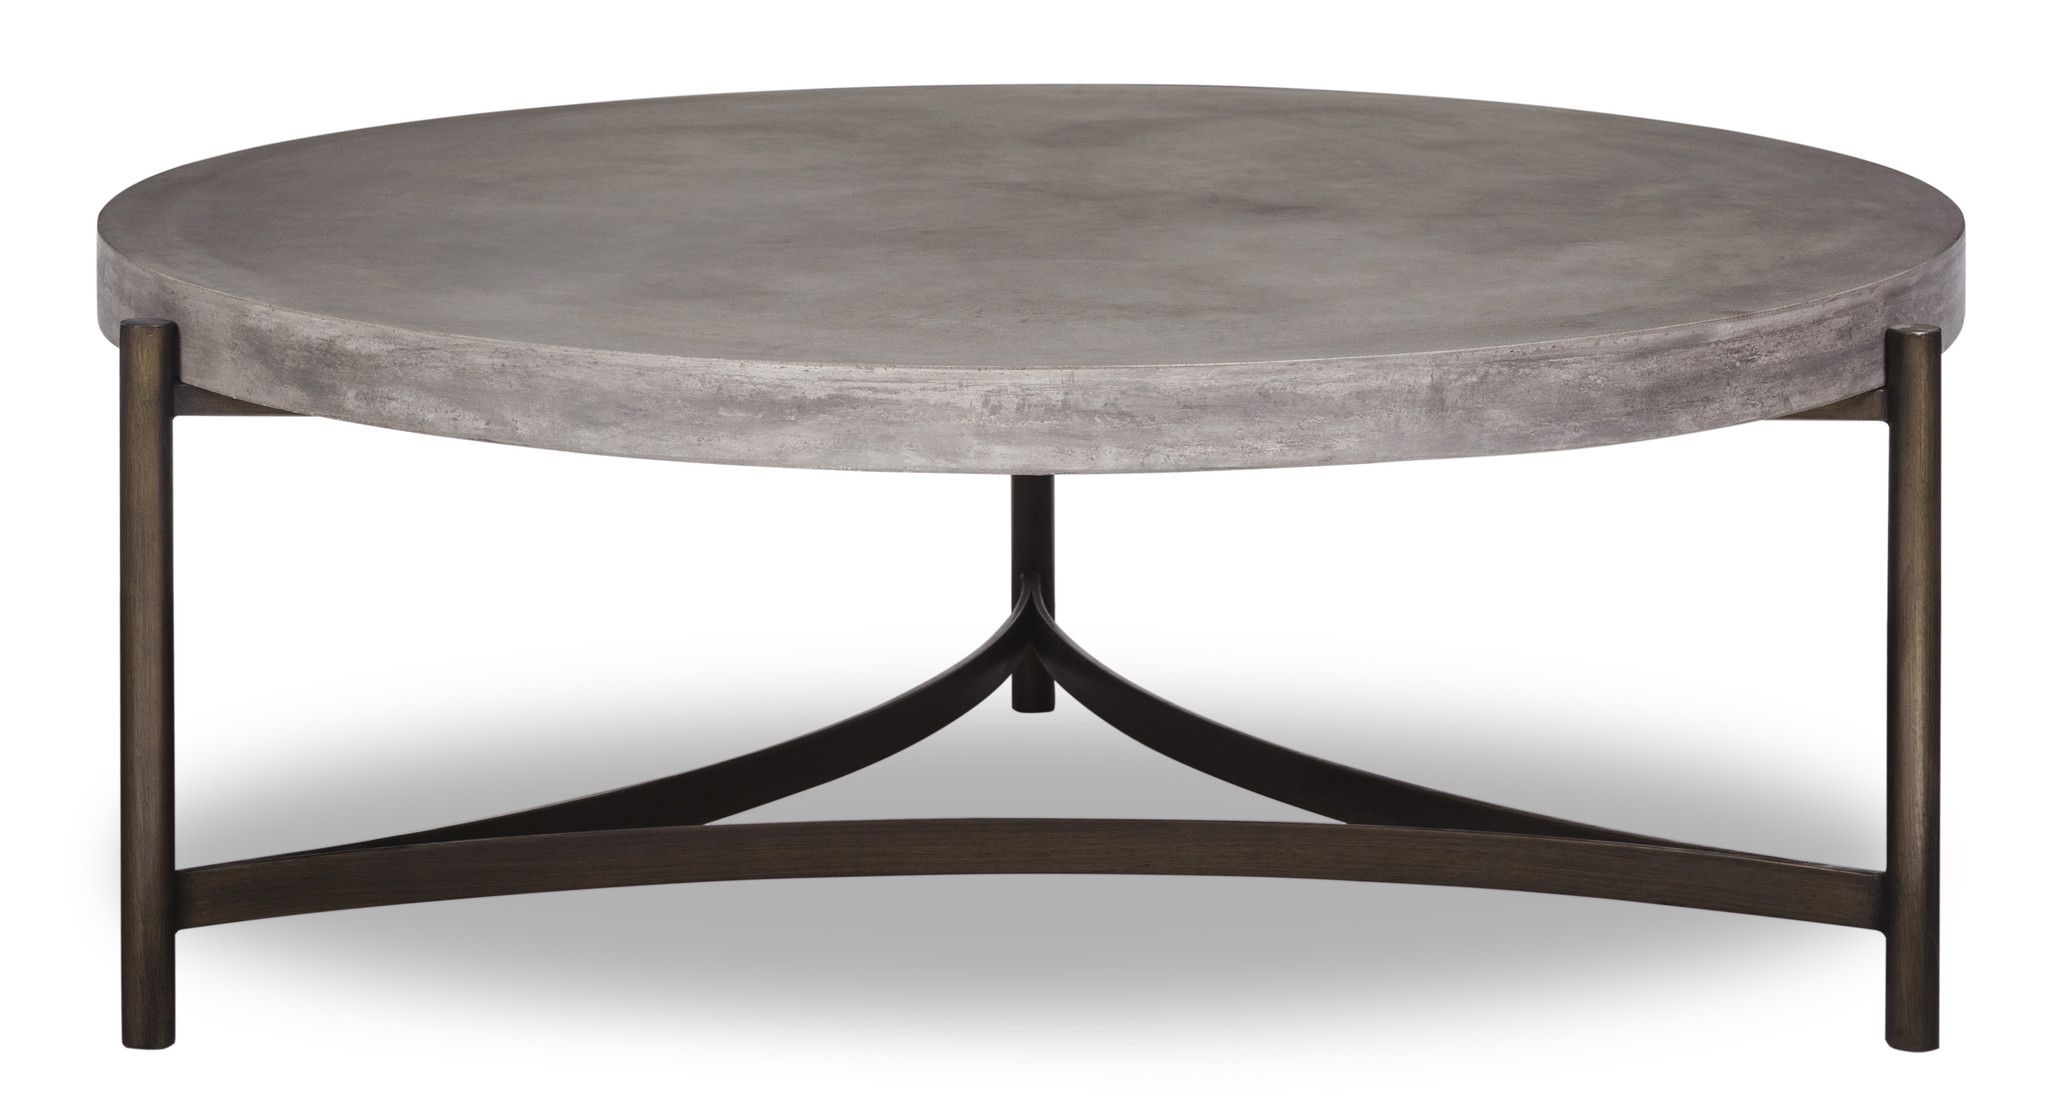 Washington round coffee table tripod concrete and coffee washington round coffee table geotapseo Images